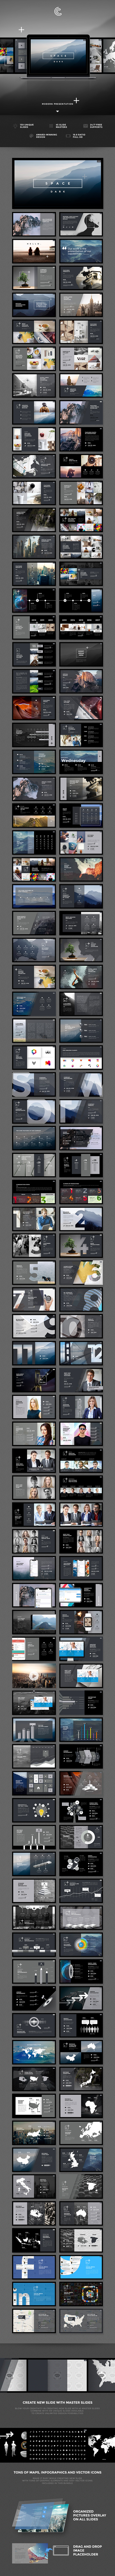 GraphicRiver Space Dark Keynote 21003993